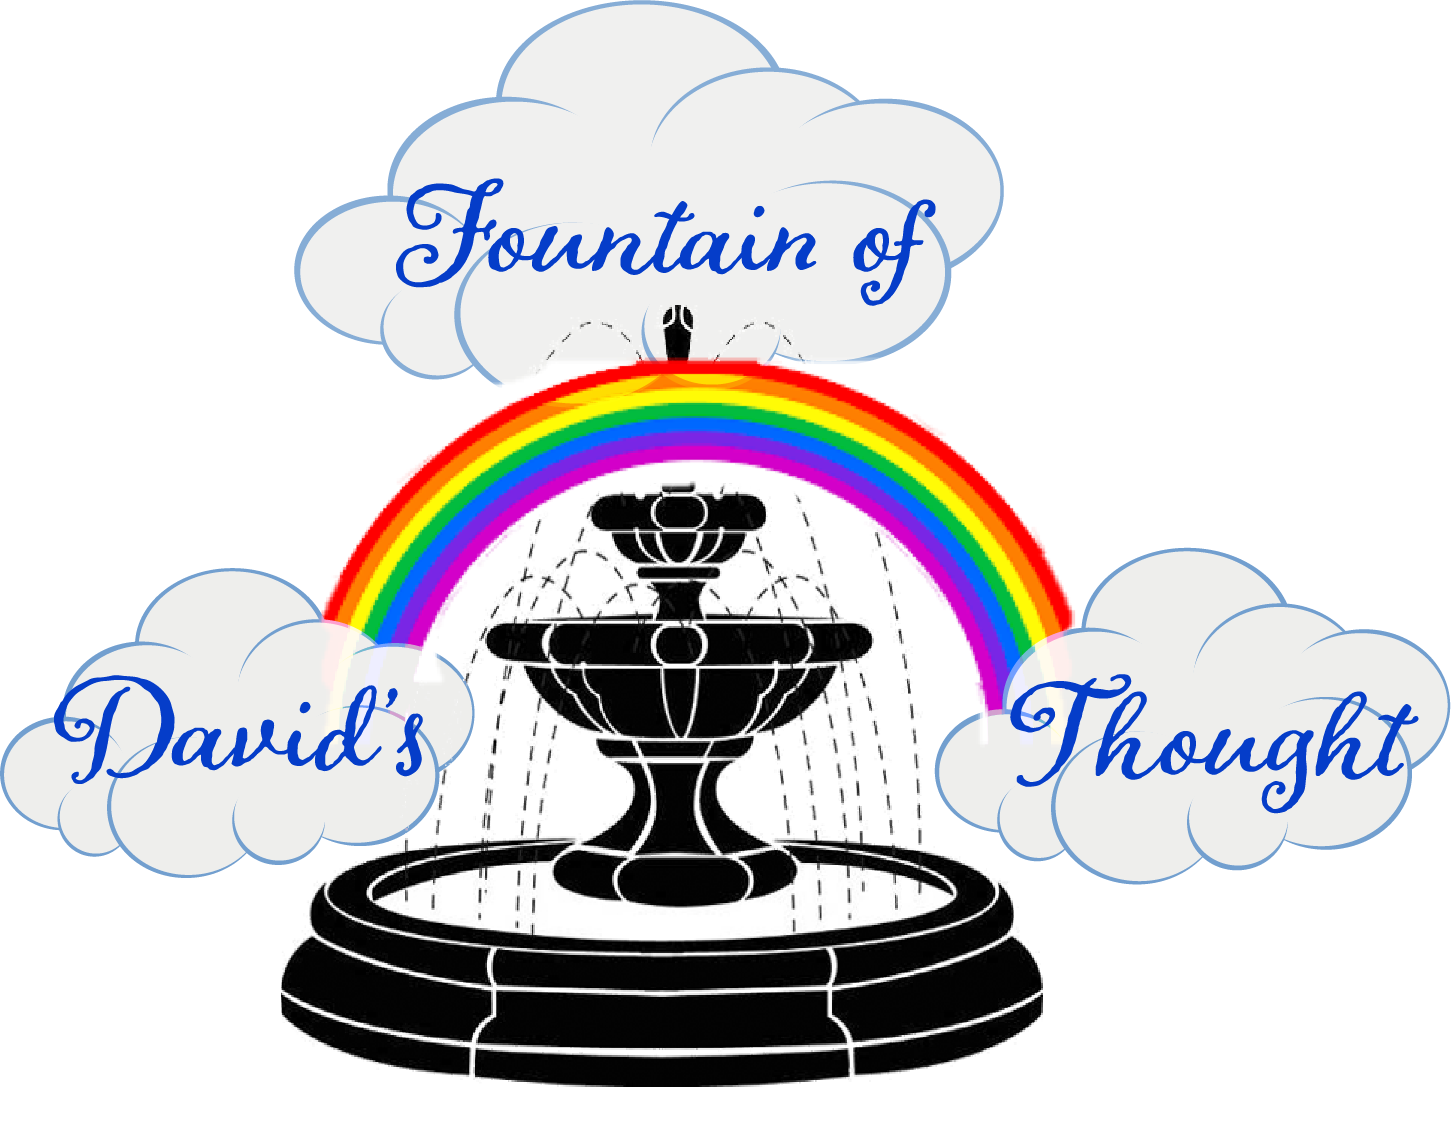 Davids Fountain of Thought-2021